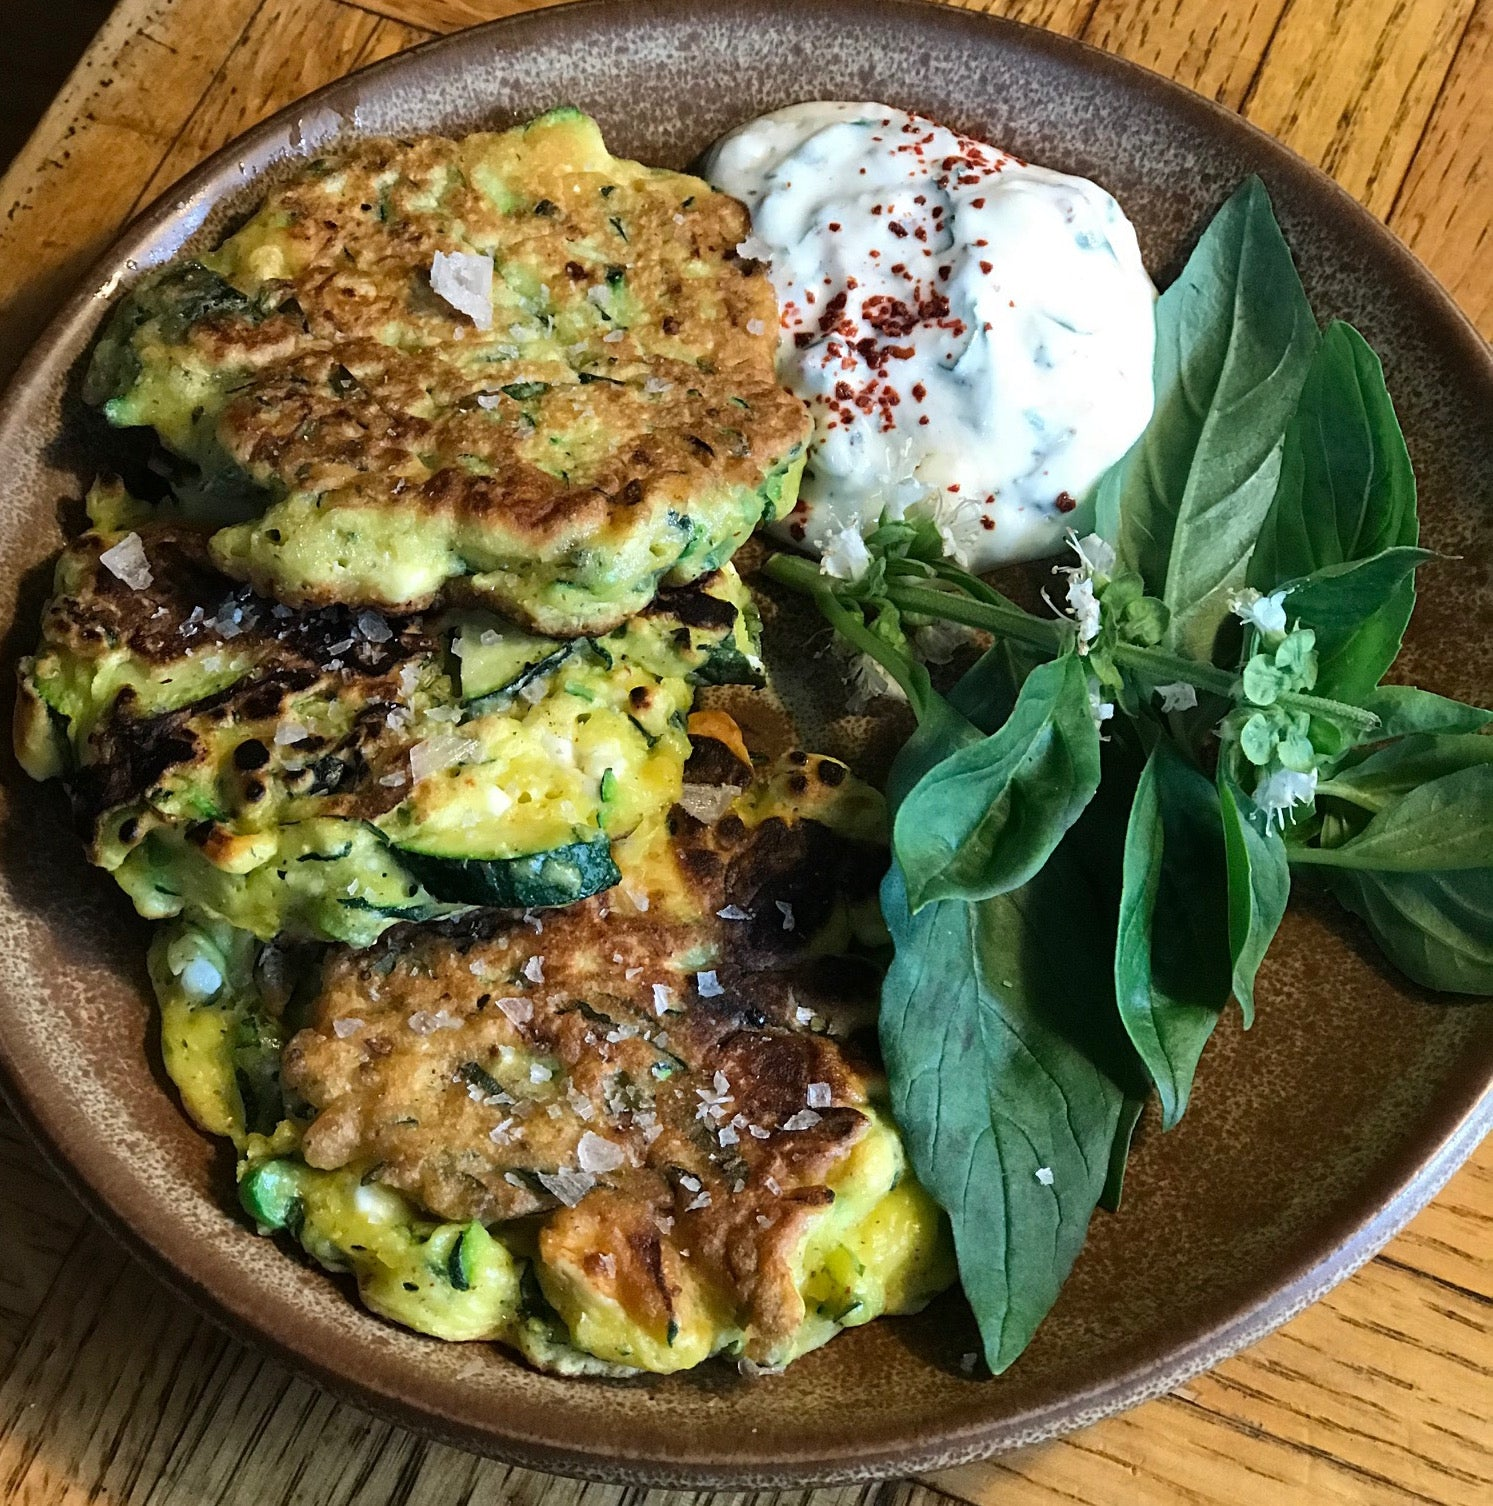 Zucchini, Basil and Garlic Whistle Fritters